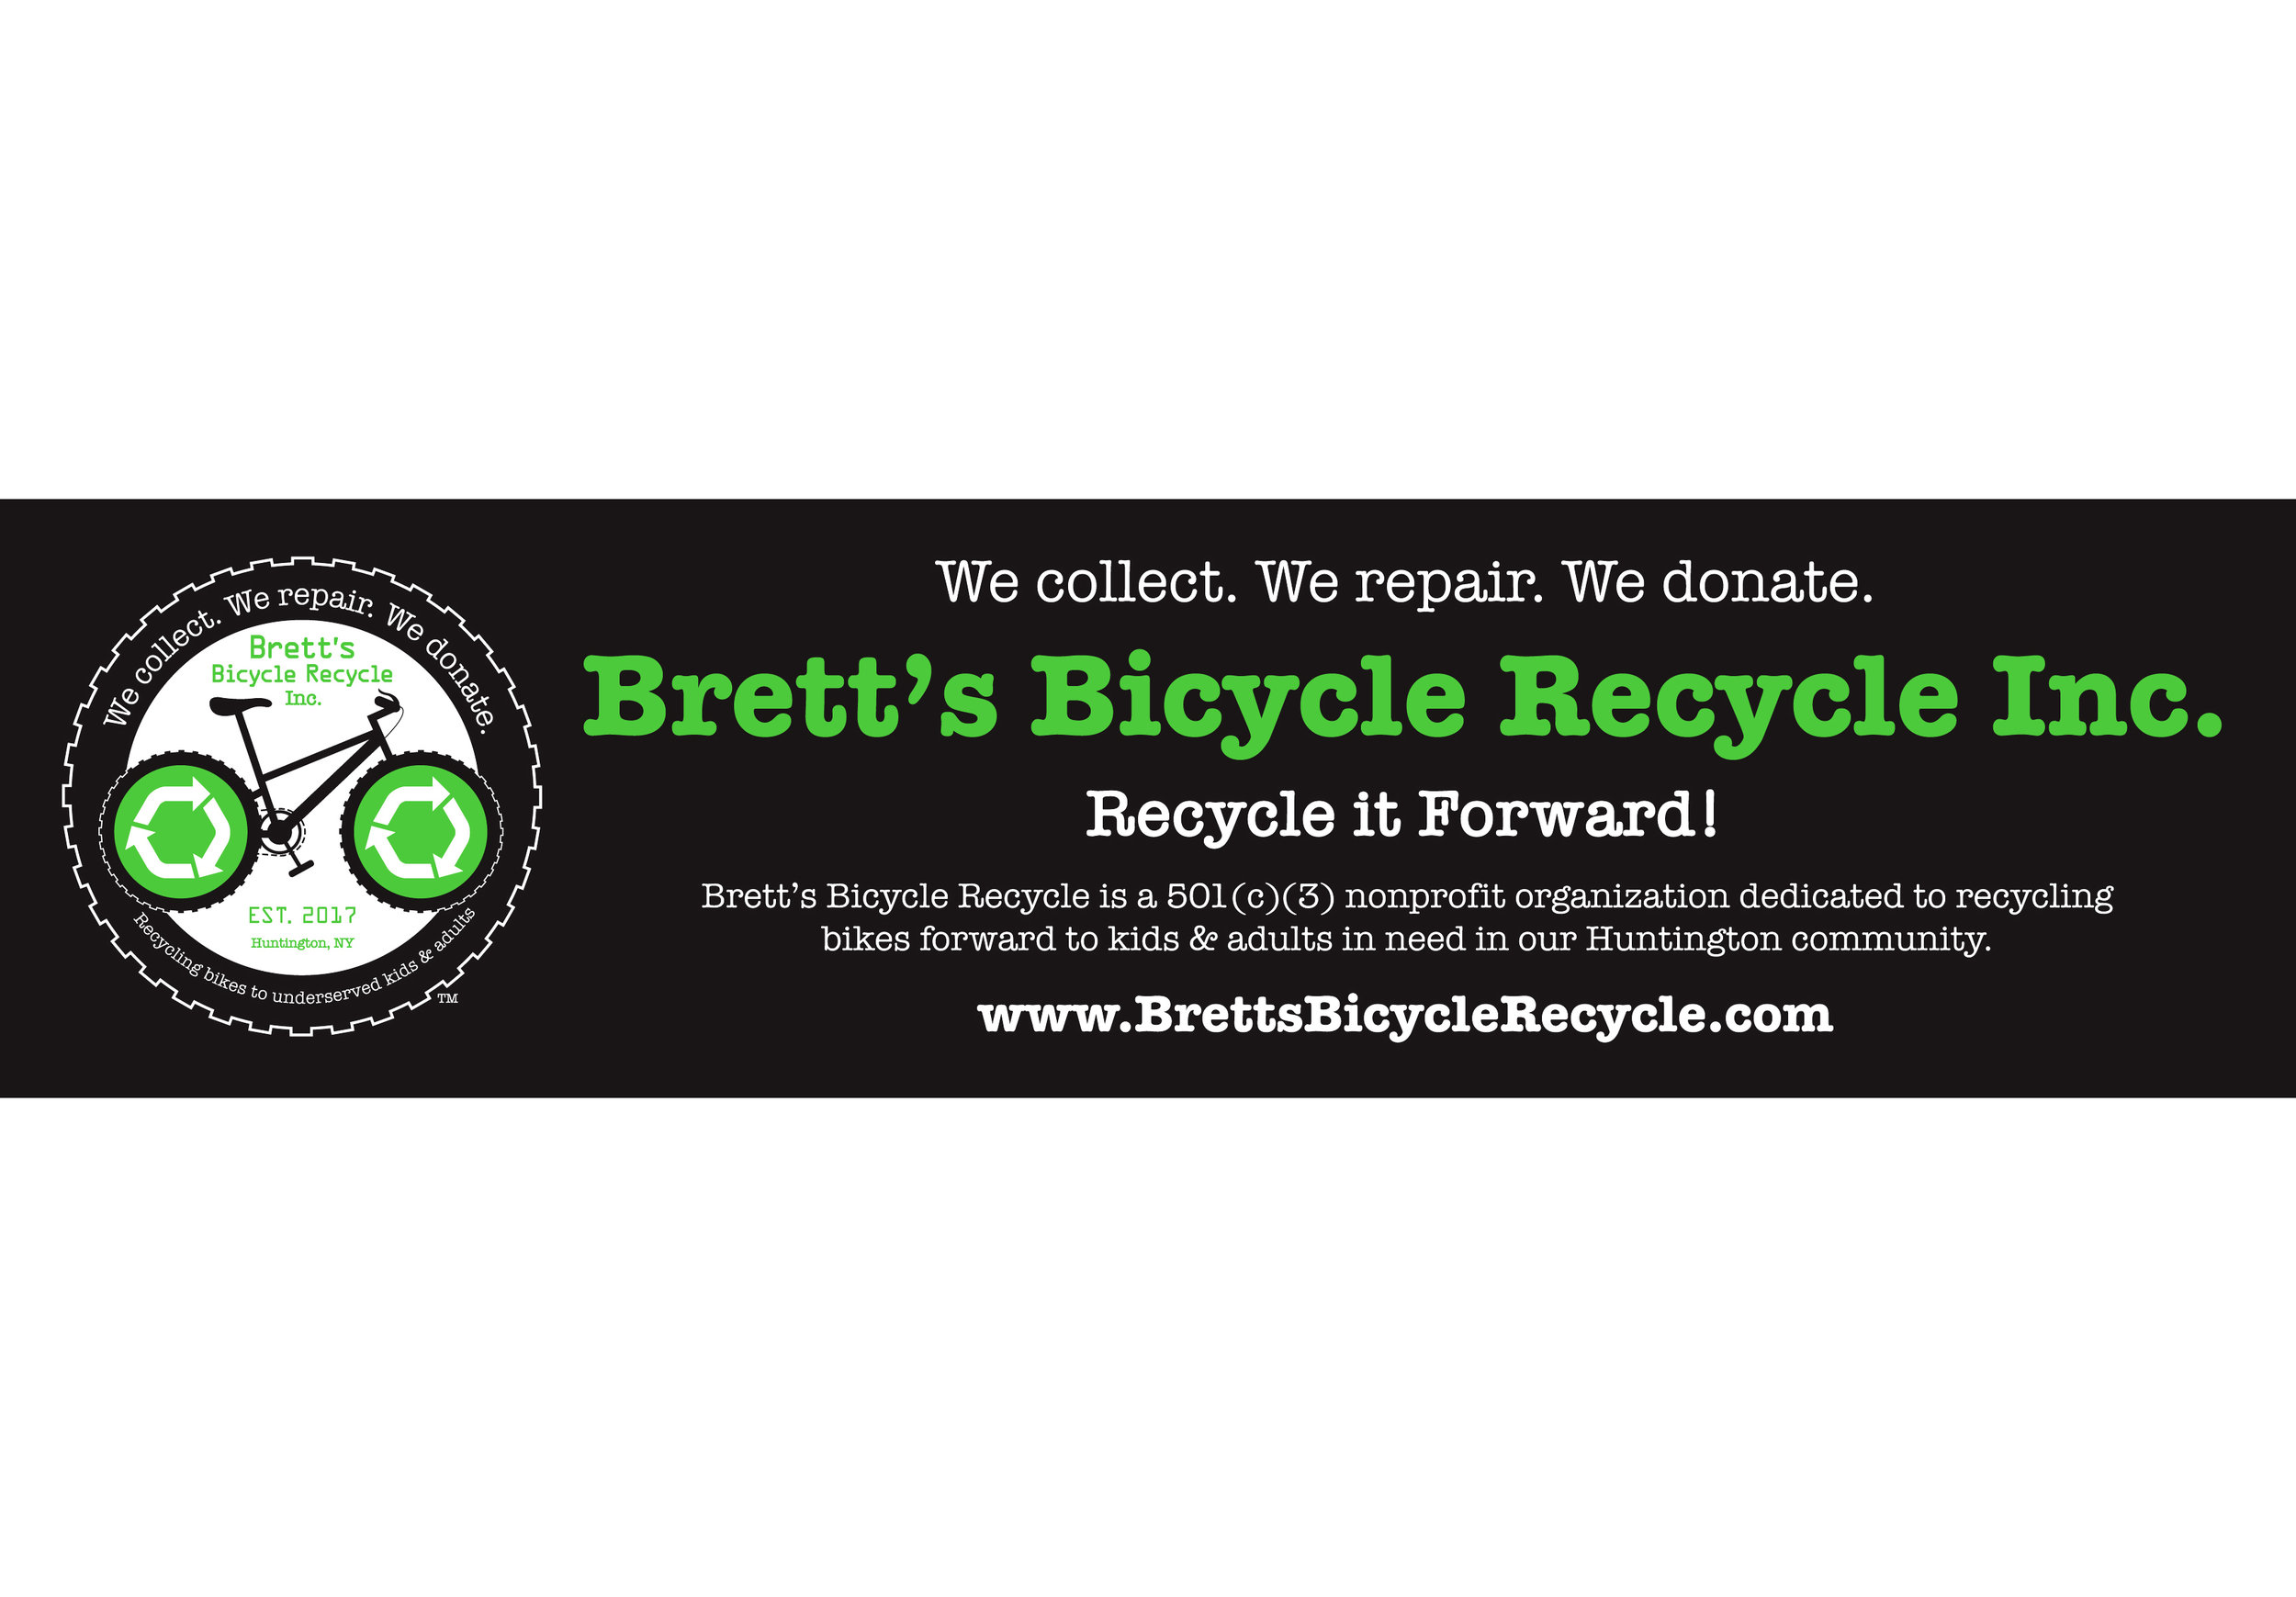 Spread the Word! - We're selling our newly designed removable adhesive bumperstickers to spread the word about what Brett's Bicycle Recycle does in our Huntington community. Designed by Deborah. We have a limited amount left so they will only be available at our events.Suggested donation of $10 per bumpersticker.